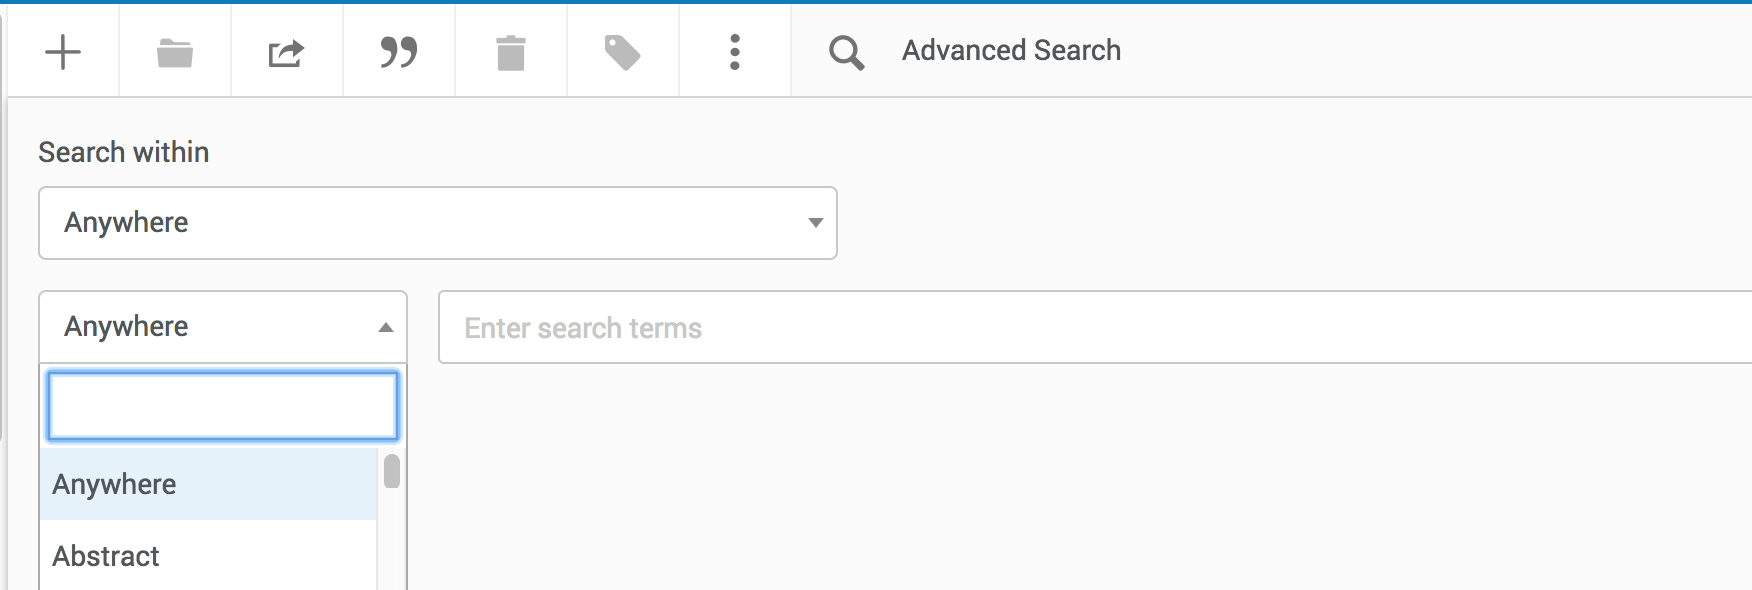 Add a search term